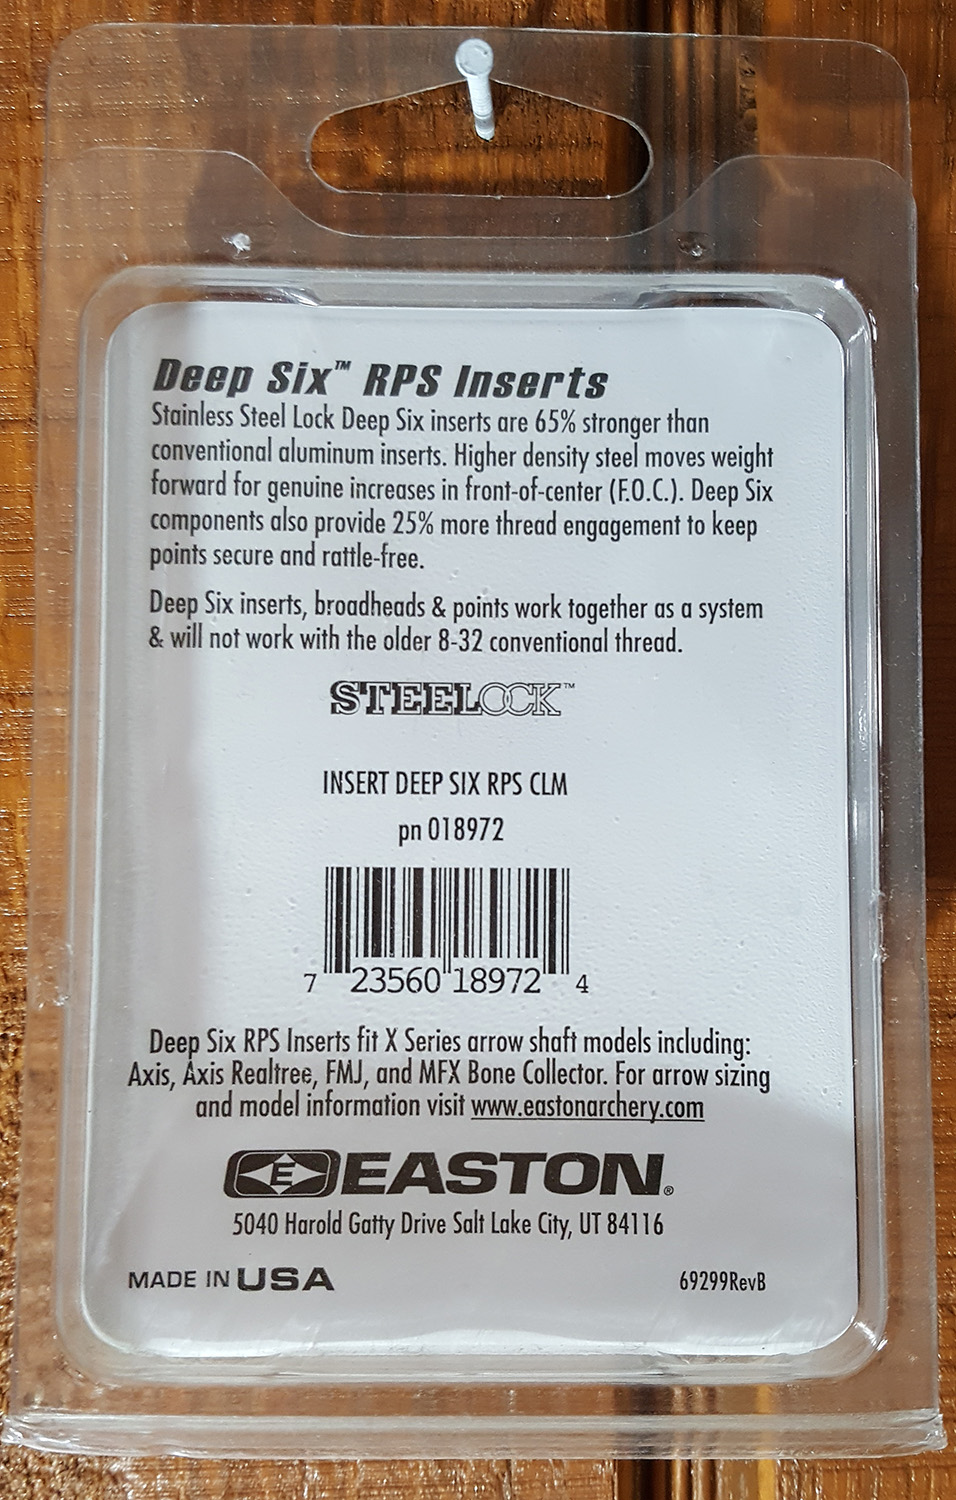 Easton deep six rps inserts 12pk only fits the deep six easton addthis sharing sidebar nvjuhfo Choice Image